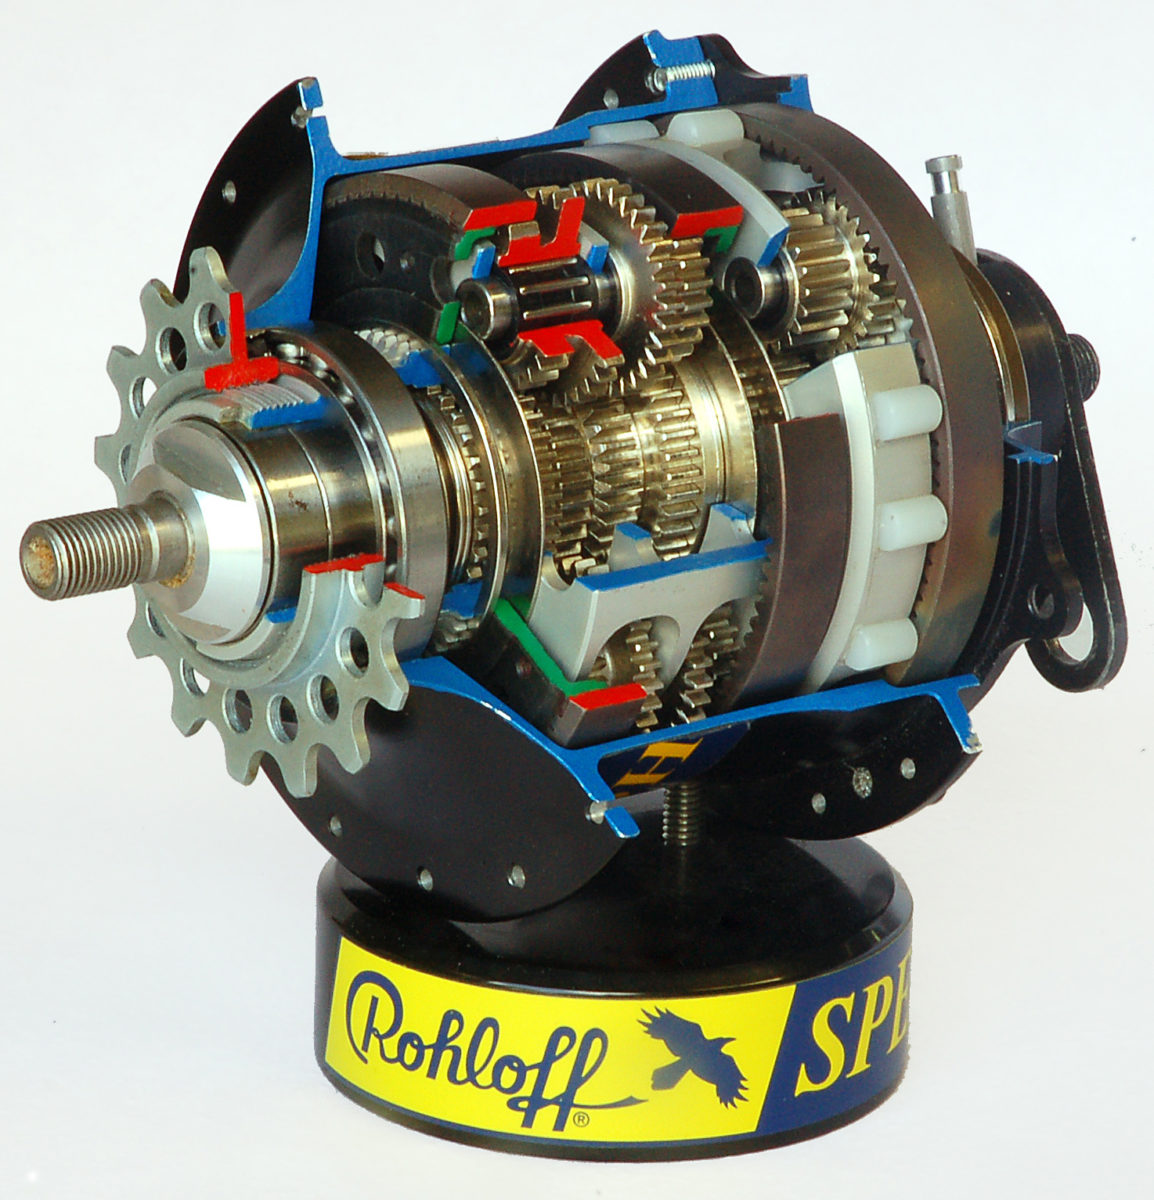 Rohloff-speedhub-500-14-by-RalfR-05